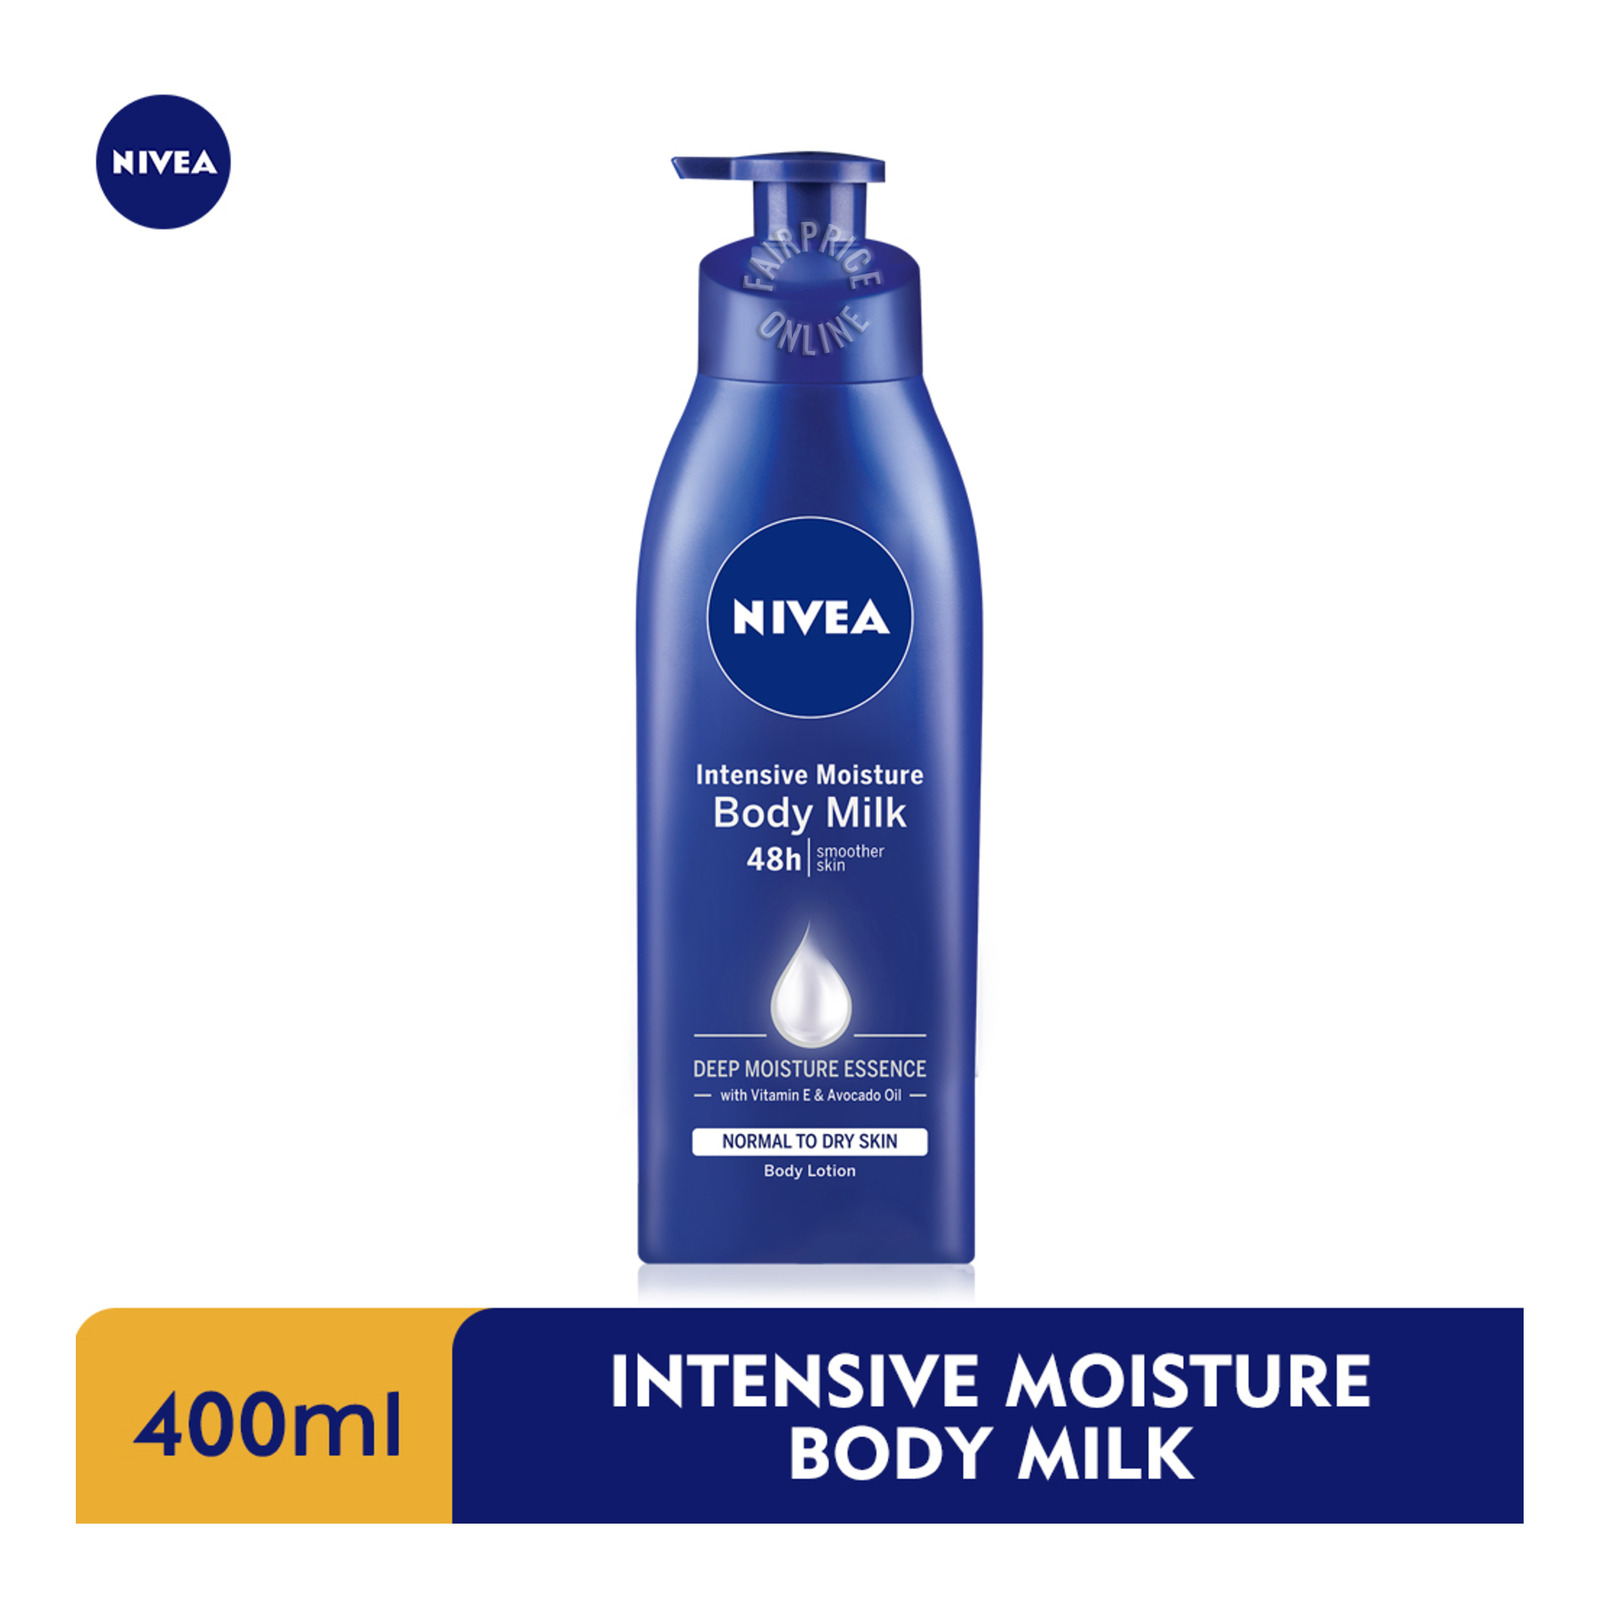 Nivea Intensive Moisture Body Milk Body Lotion, 400ml